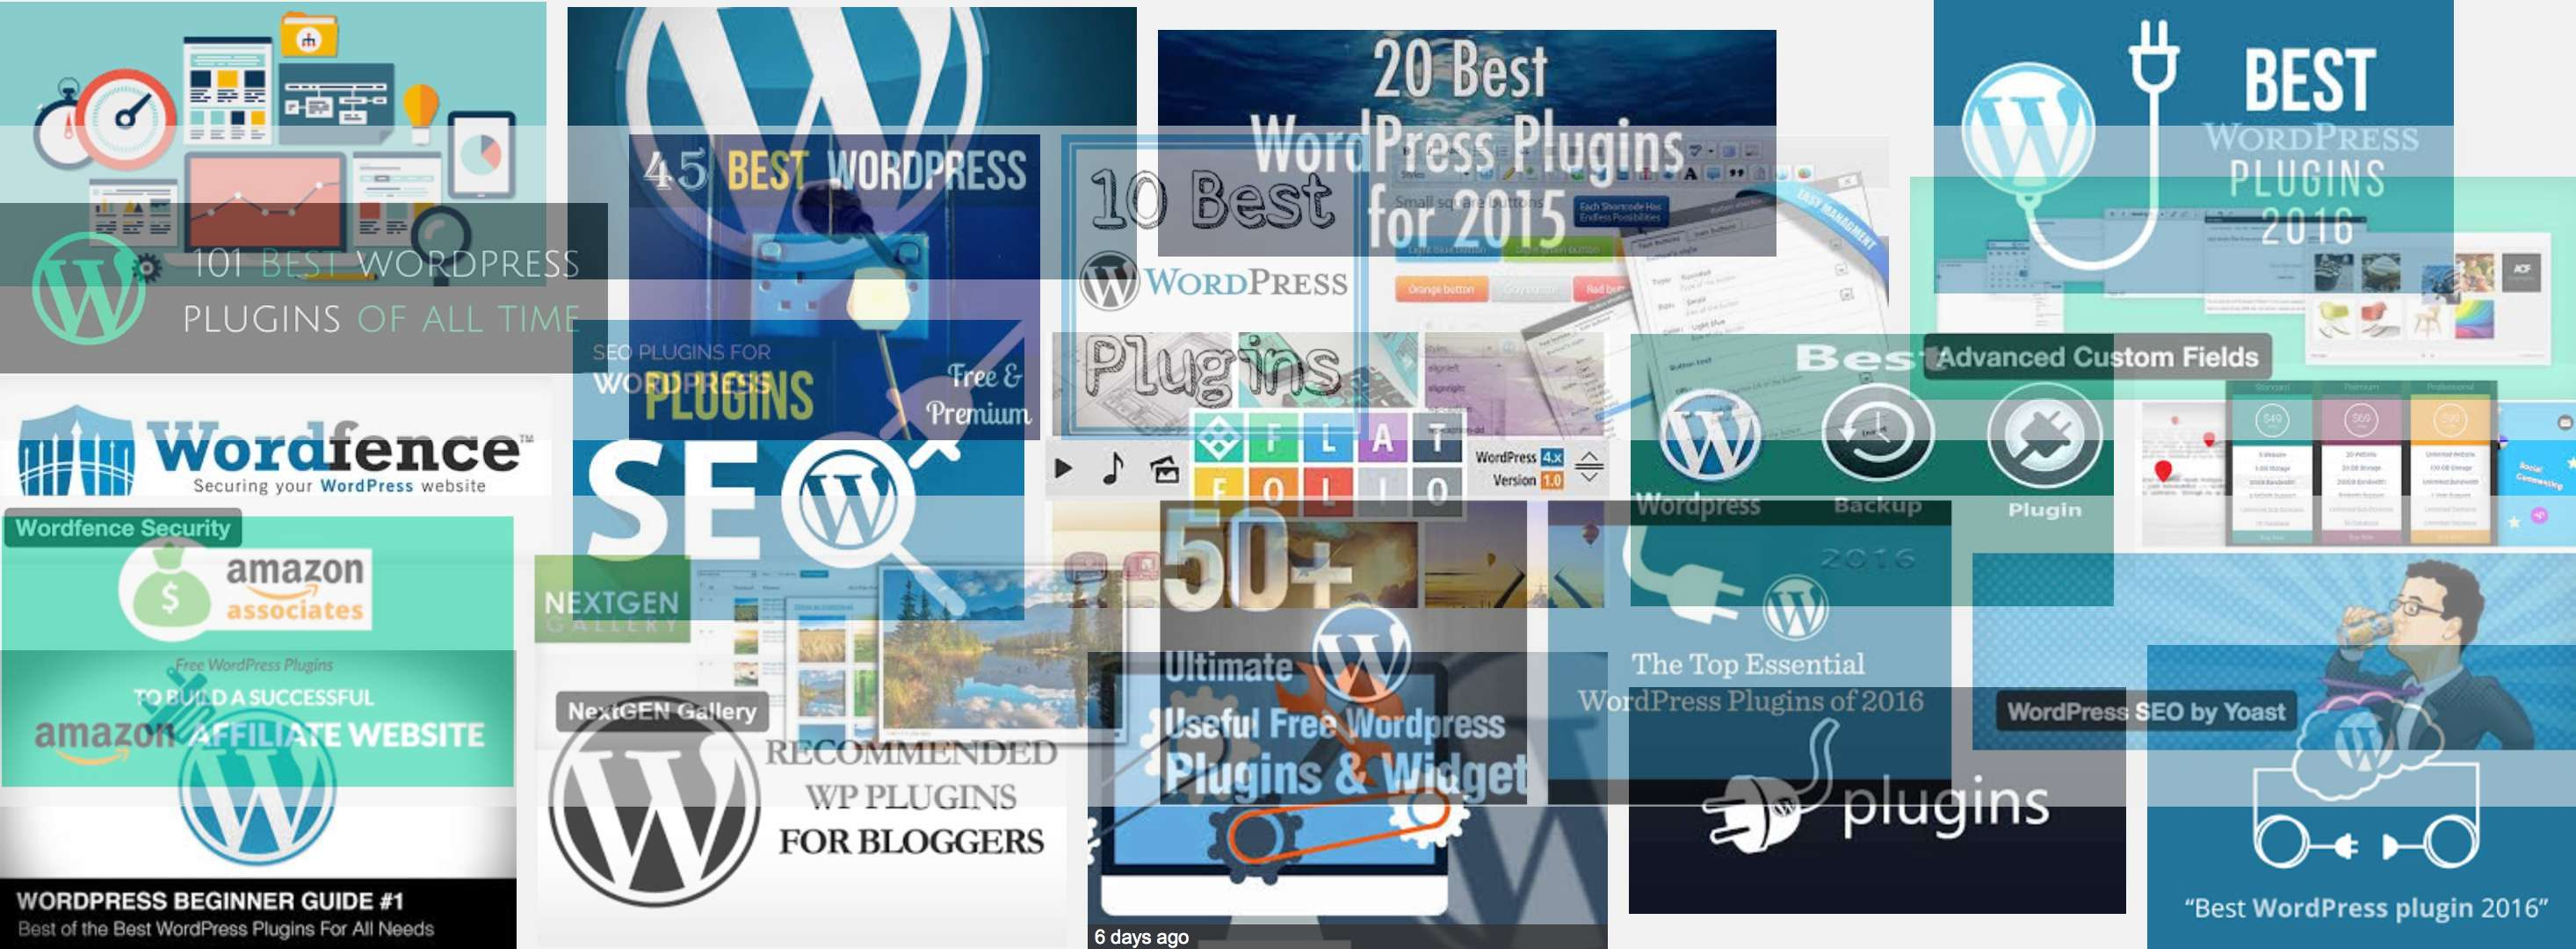 WordPress plugins choice